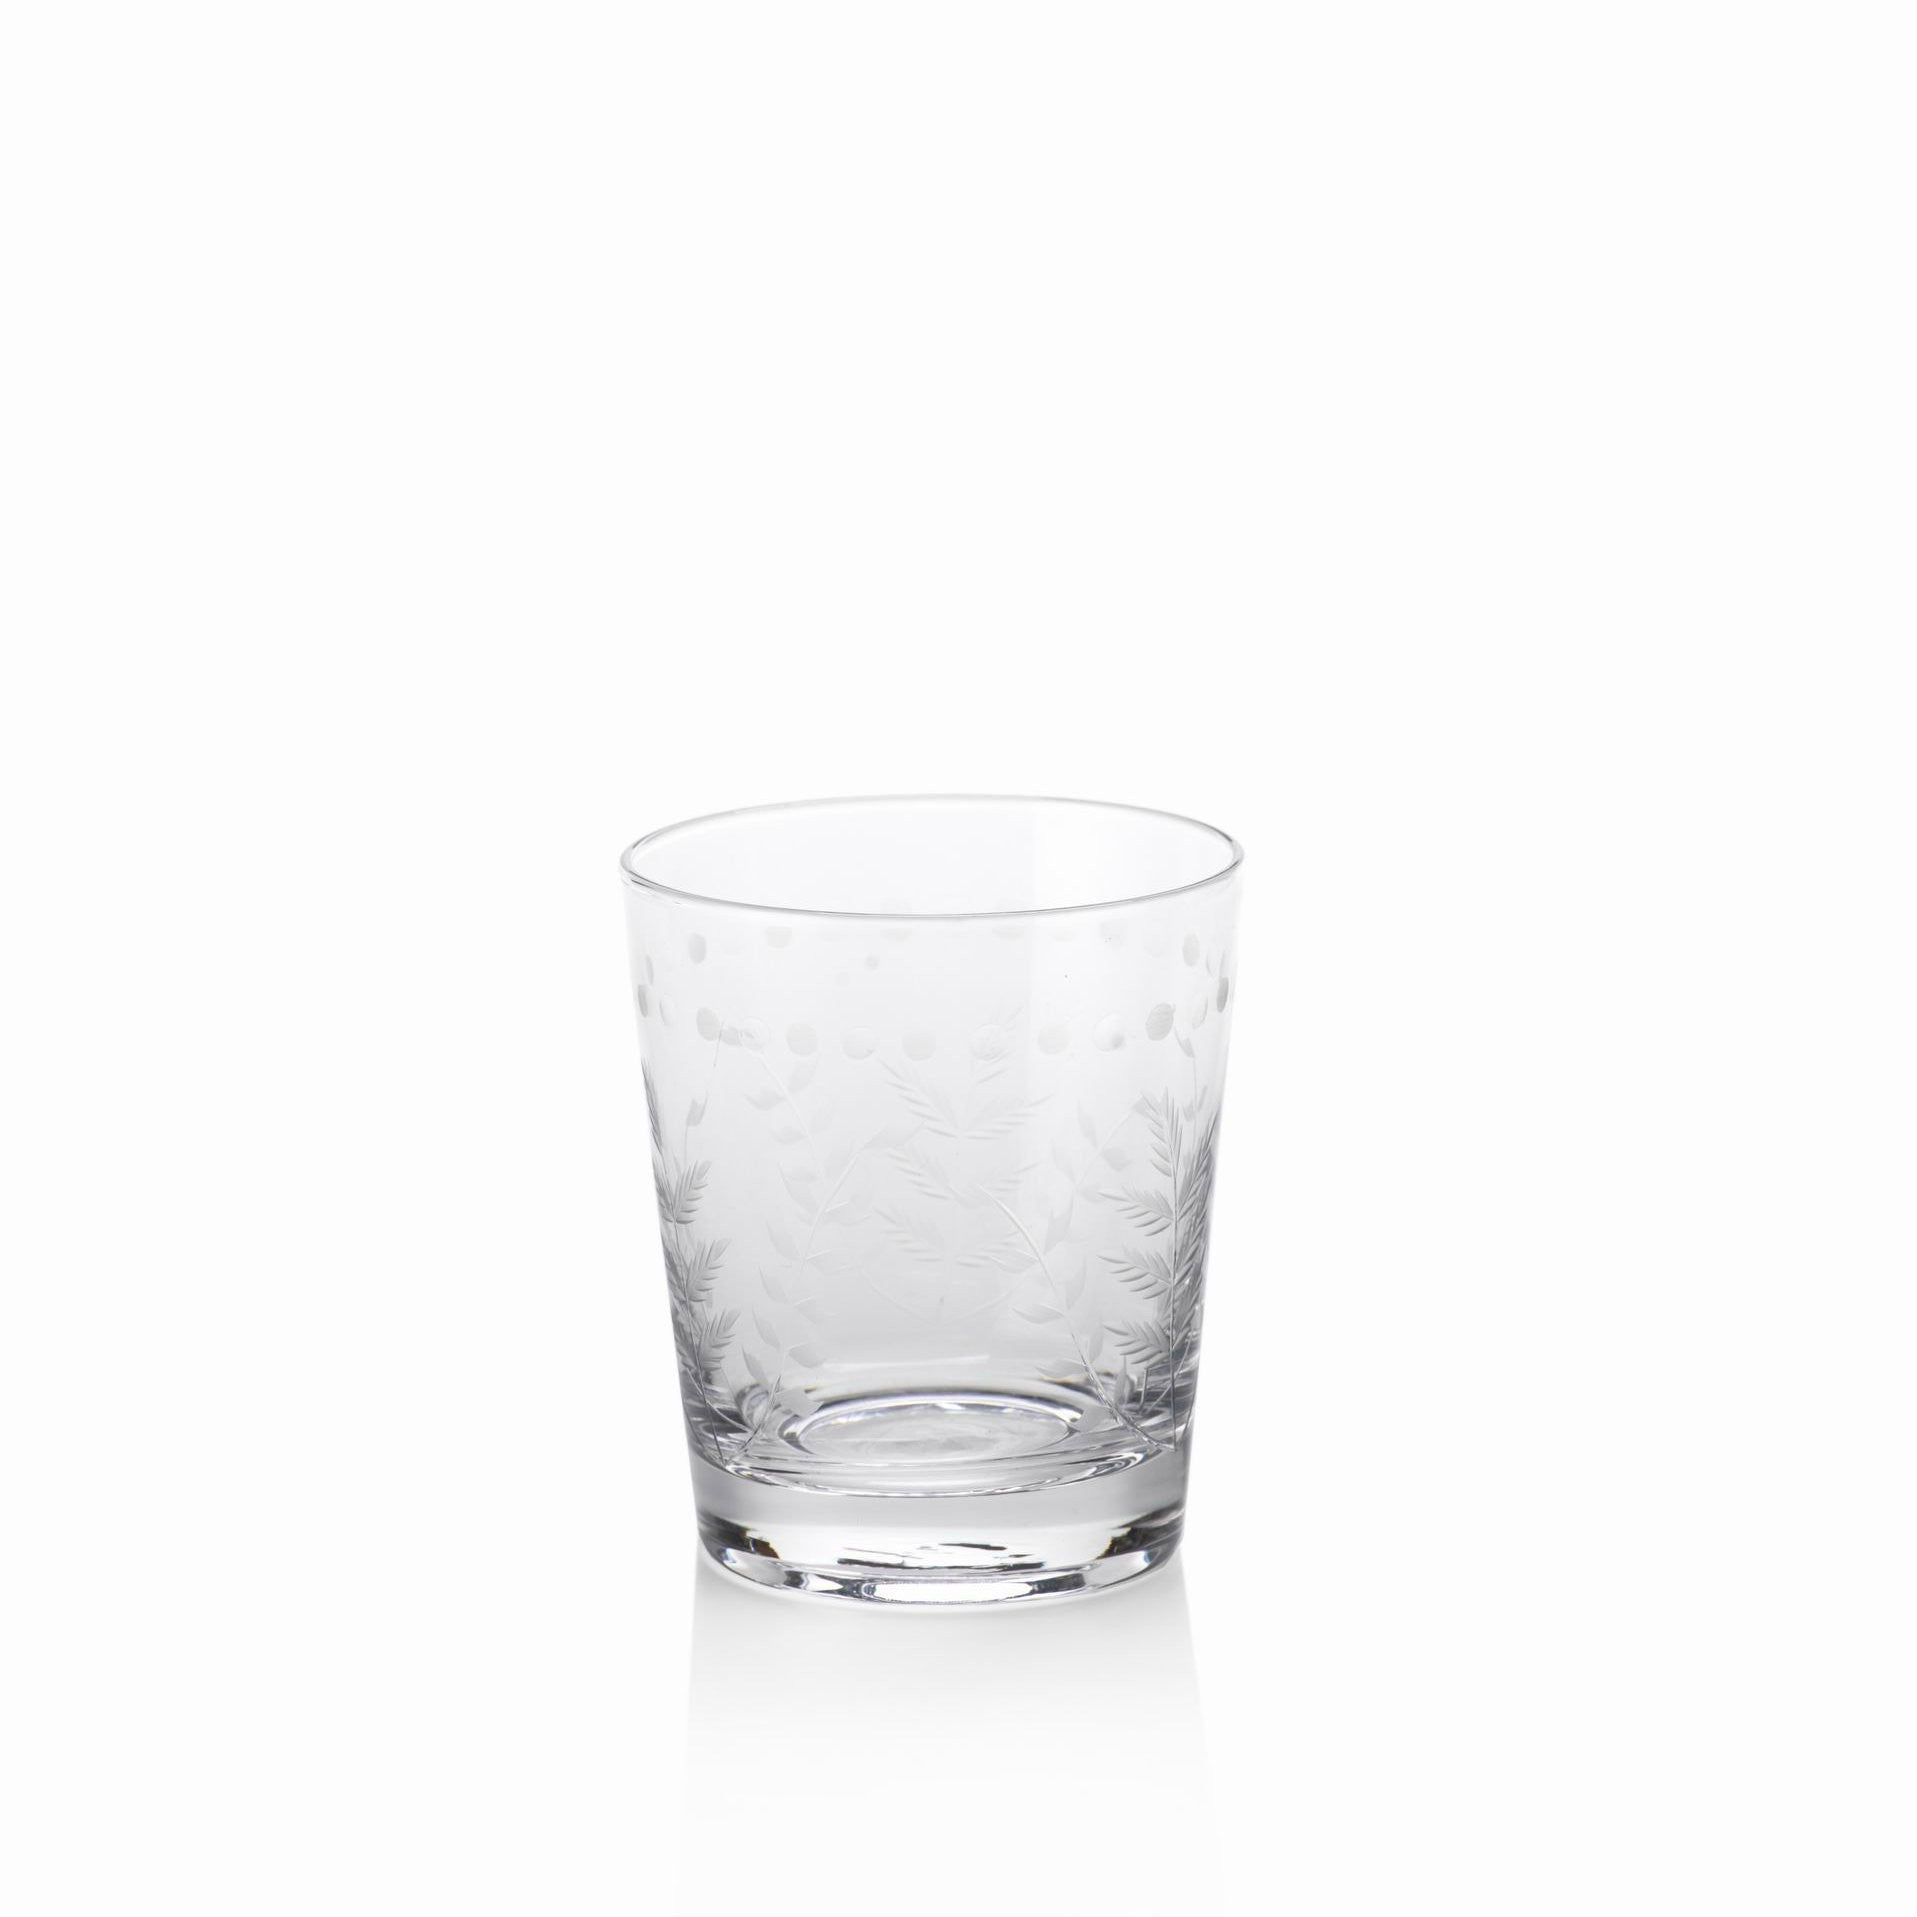 Spring Leaves Glassware - Set of 4 - DOF Glass - CARLYLE AVENUE - 5